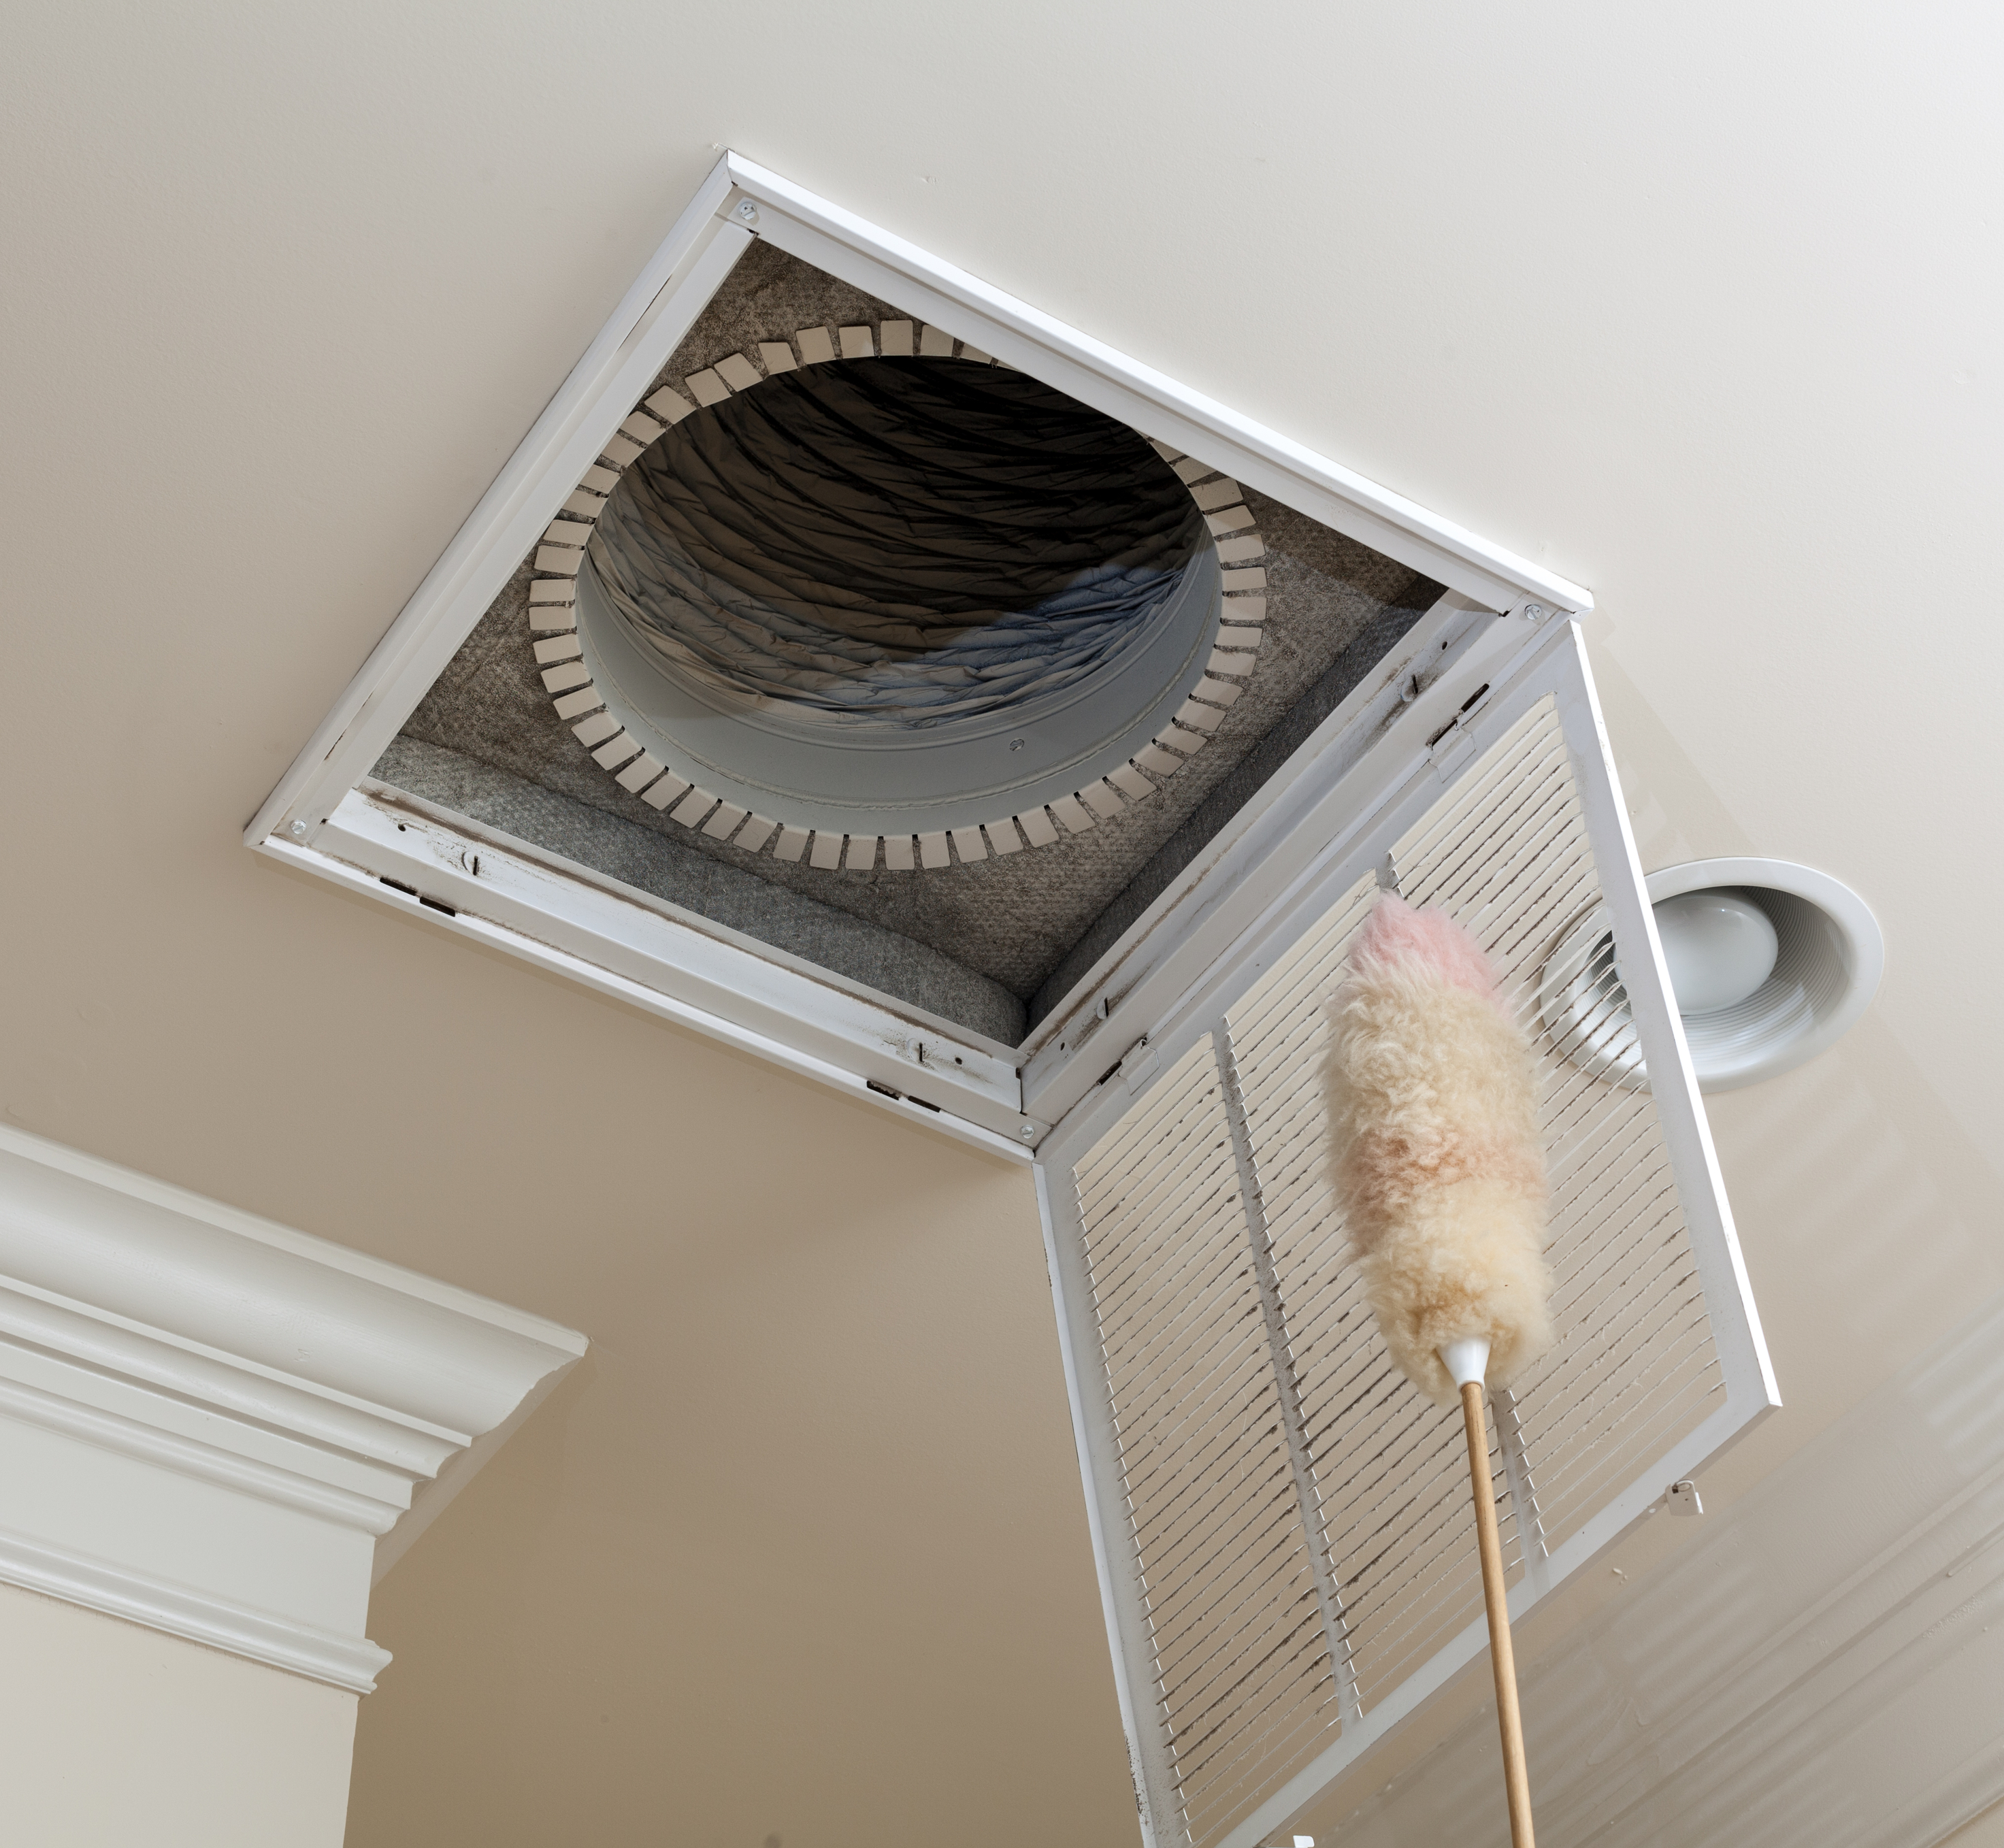 Air Cond Ventilator : How to operate your central air conditioner more efficiently